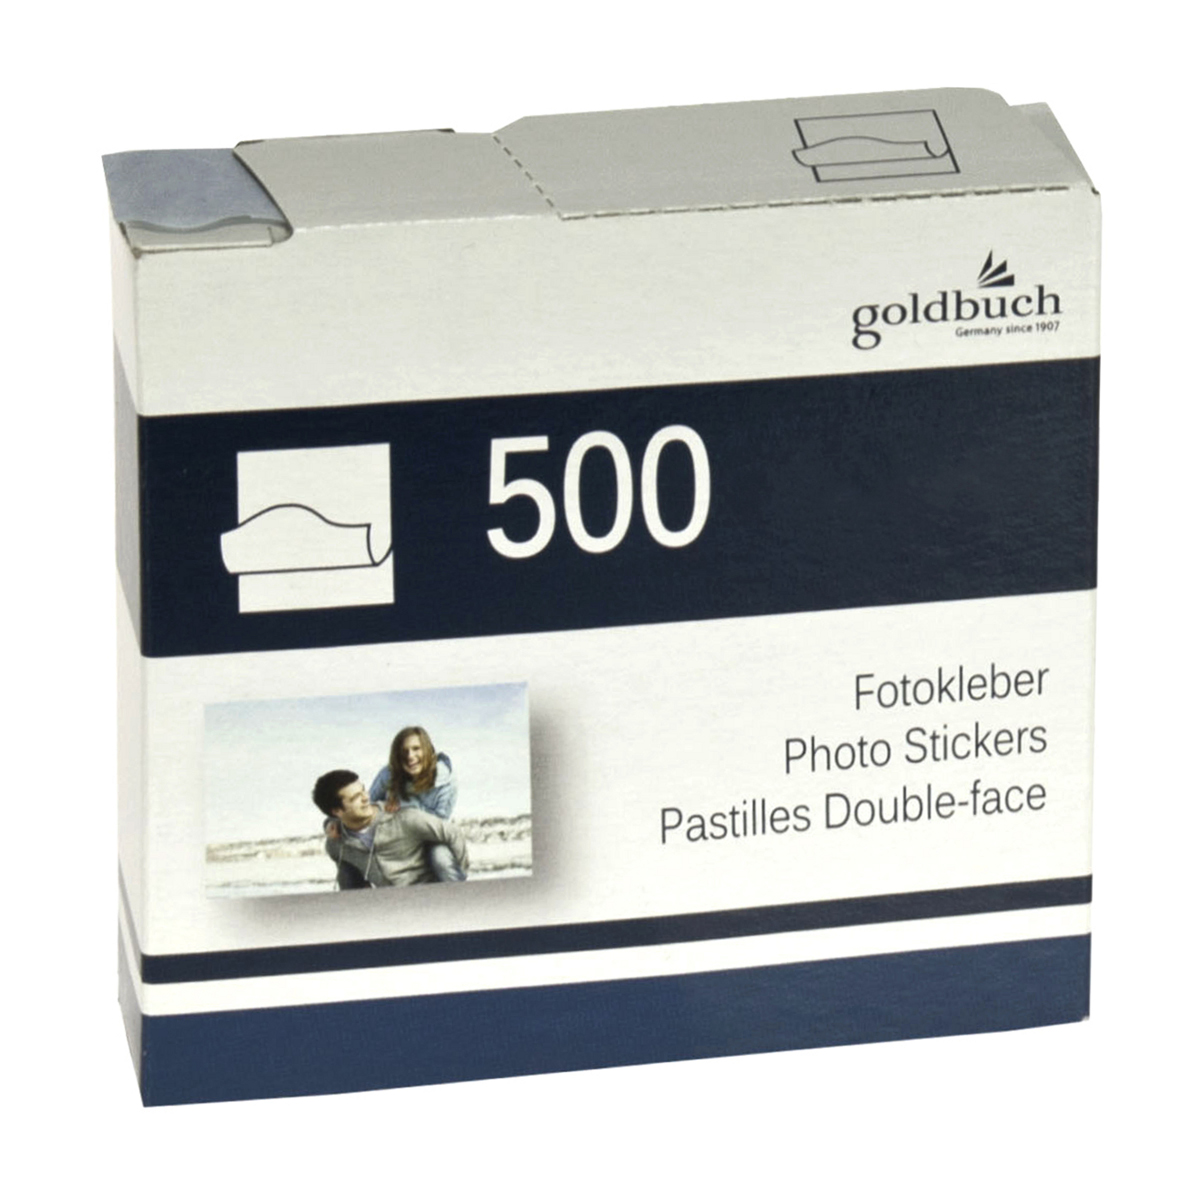 goldbuch Fotosticker